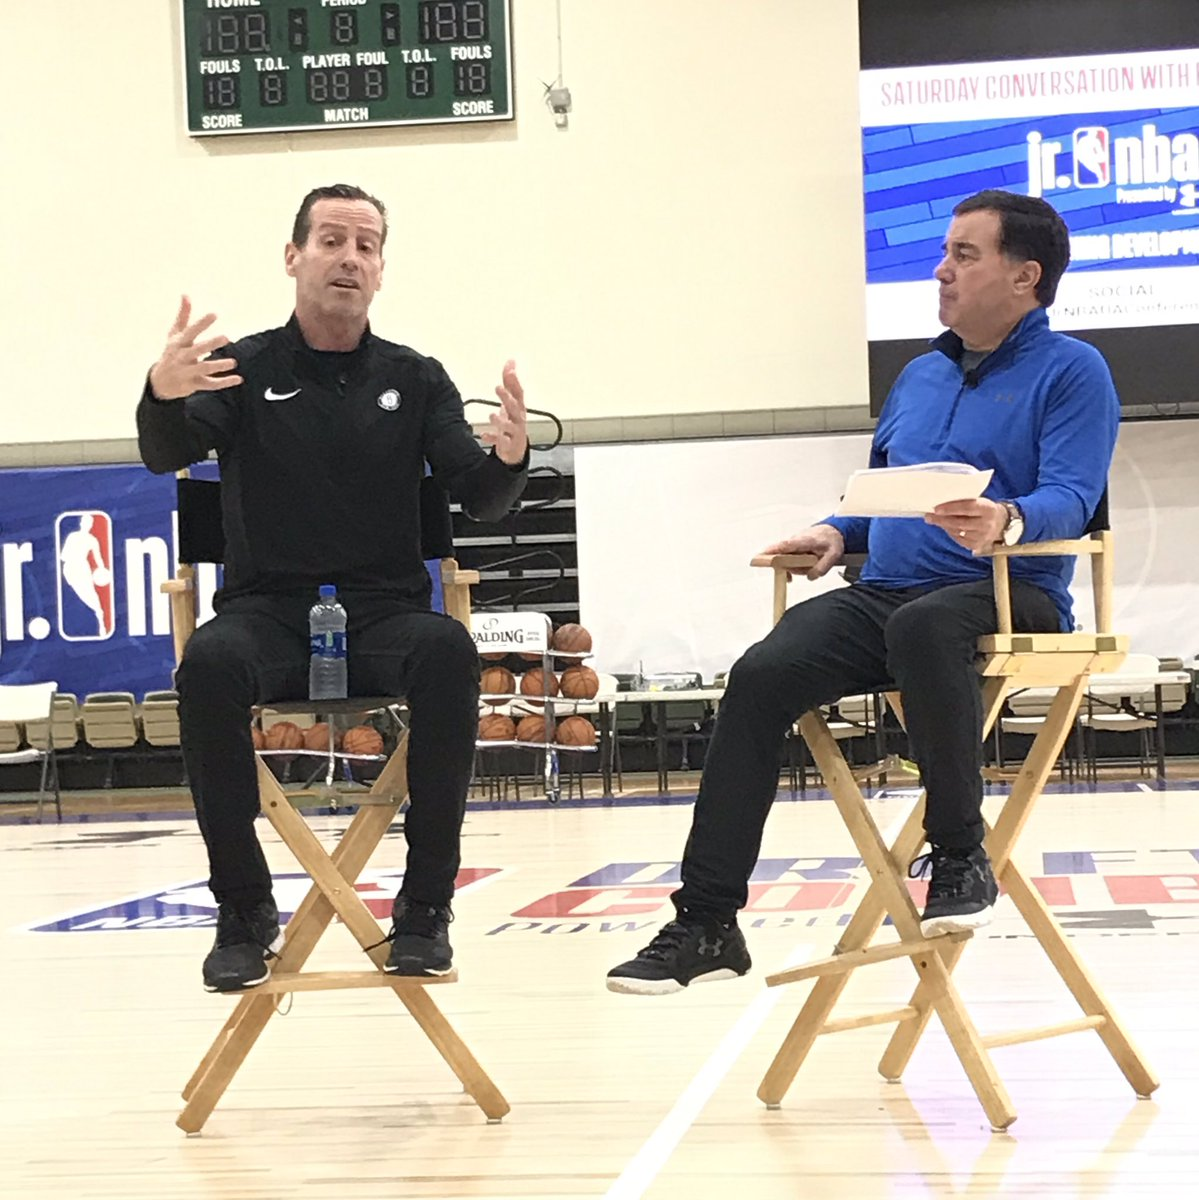 Top story: @jrnba: 'Brooklyn Nets head coach Kenny Atkinson speaks to Fran Fraschilla at the Jr. NBA Youth Basketball Leadership Conference presented by @UAbasketball. #JrNBAUAConference ' , see more http://tweetedtimes.com/helidonauries?s=tnp …